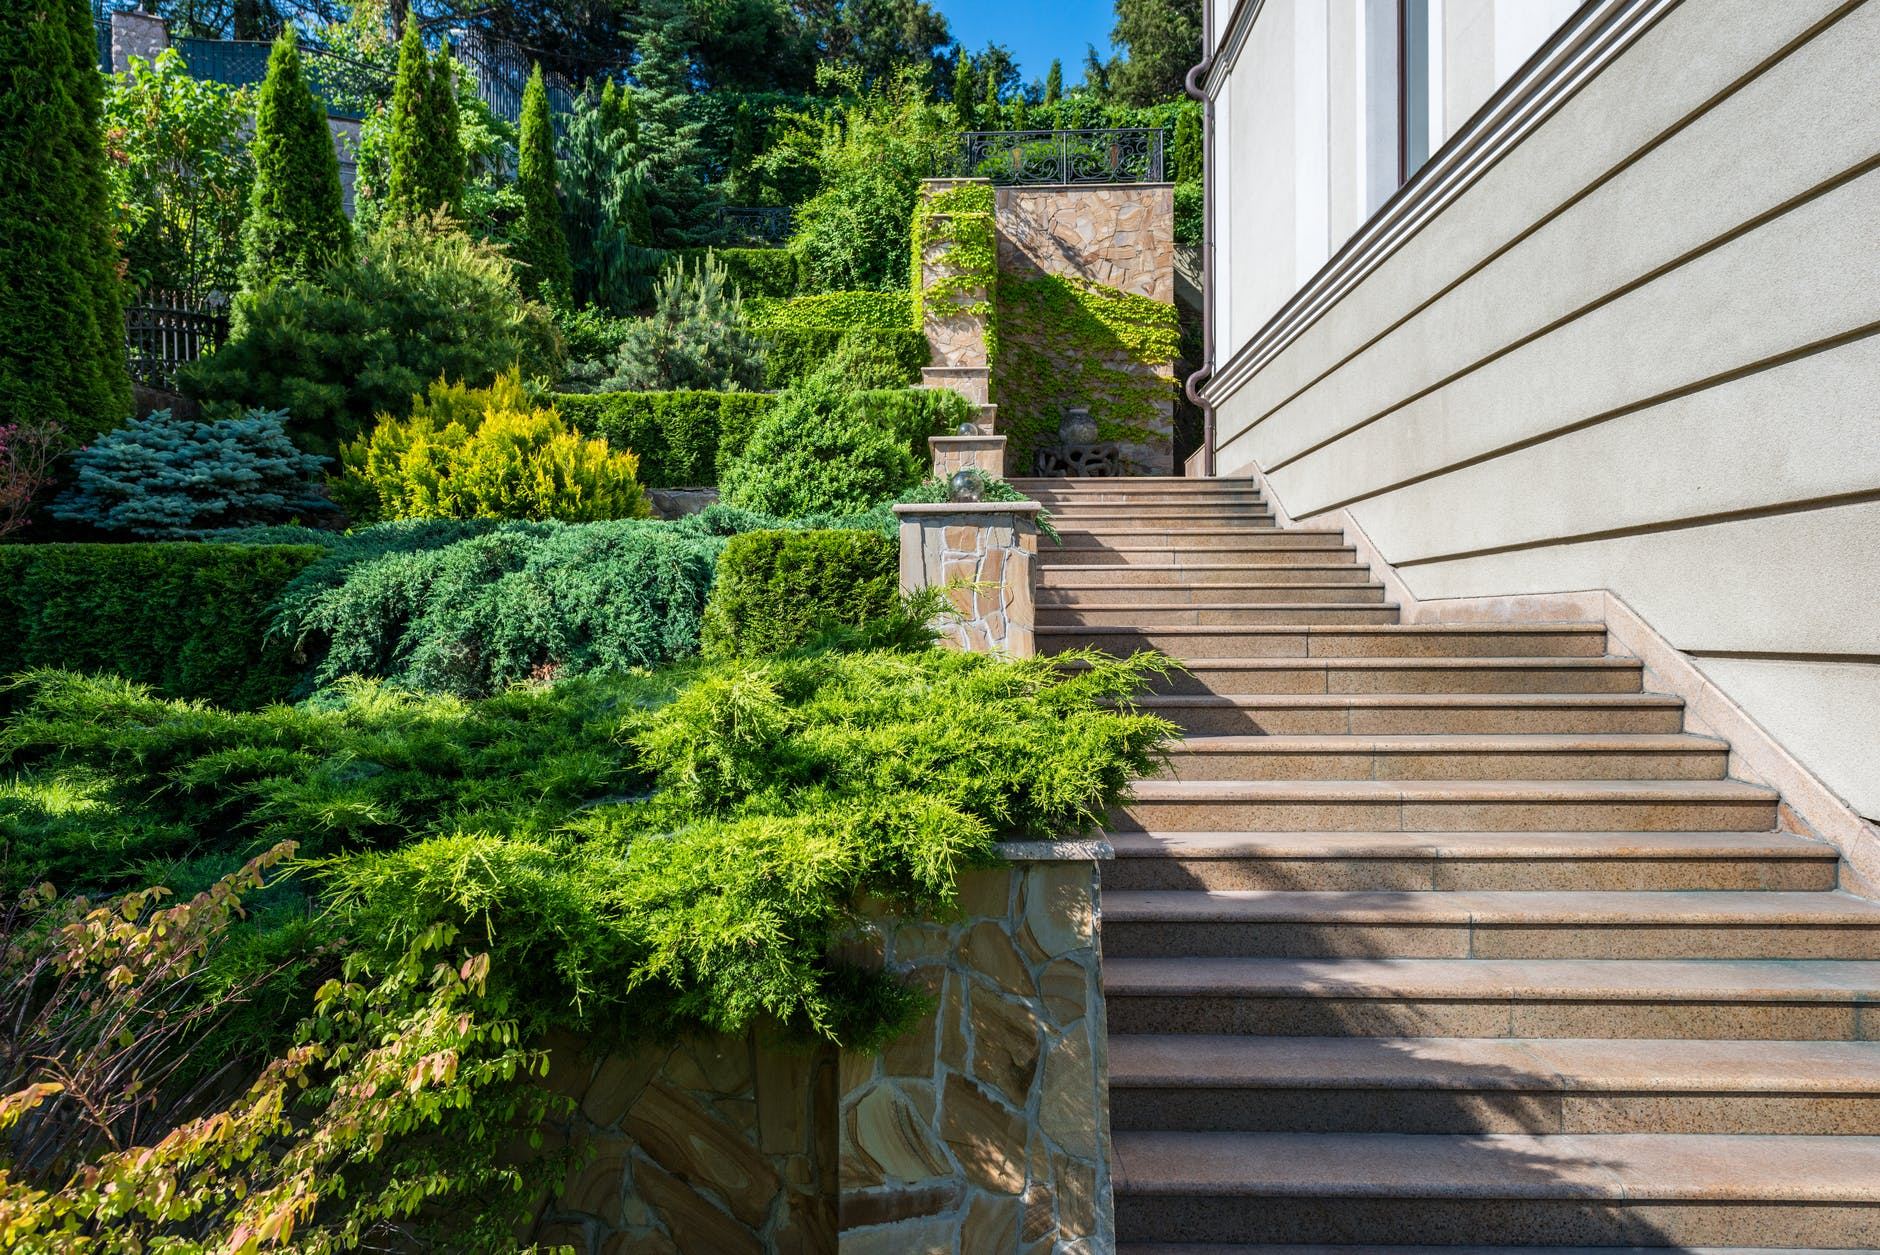 green shrubs and trees near gray steps of building